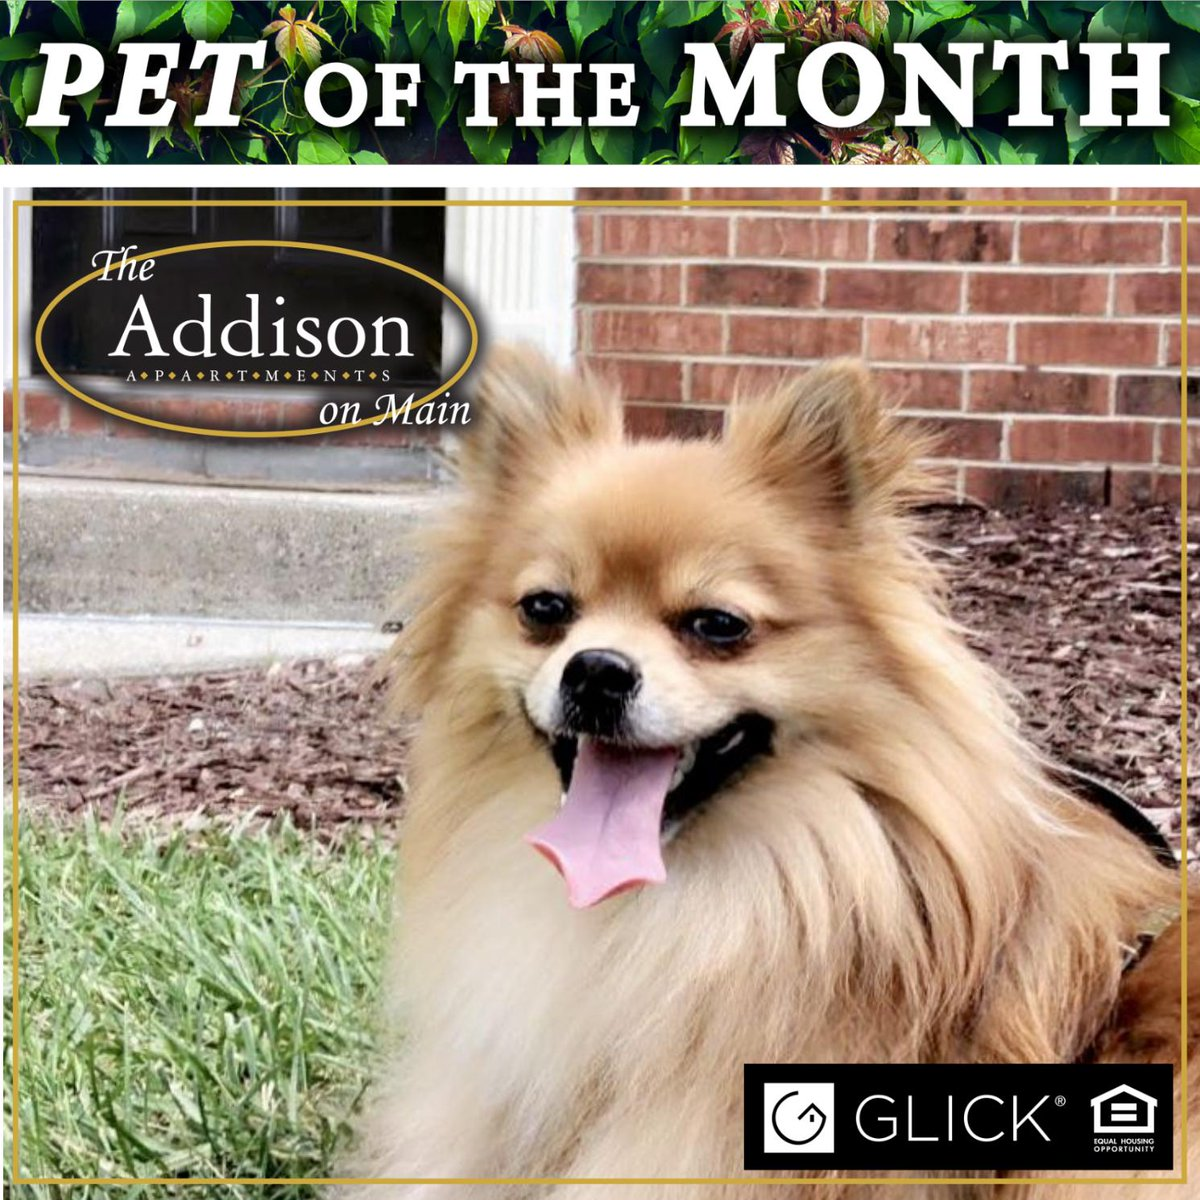 """Bentley has been chosen as our Pet of the Month here at The Addison On Main! Bentley always has a """"smile"""" on his face. He loves coming to the office to say hello to the staff and definitely brightens our day when he does! Thank you, Bentley, for being such a great pet resident!"""